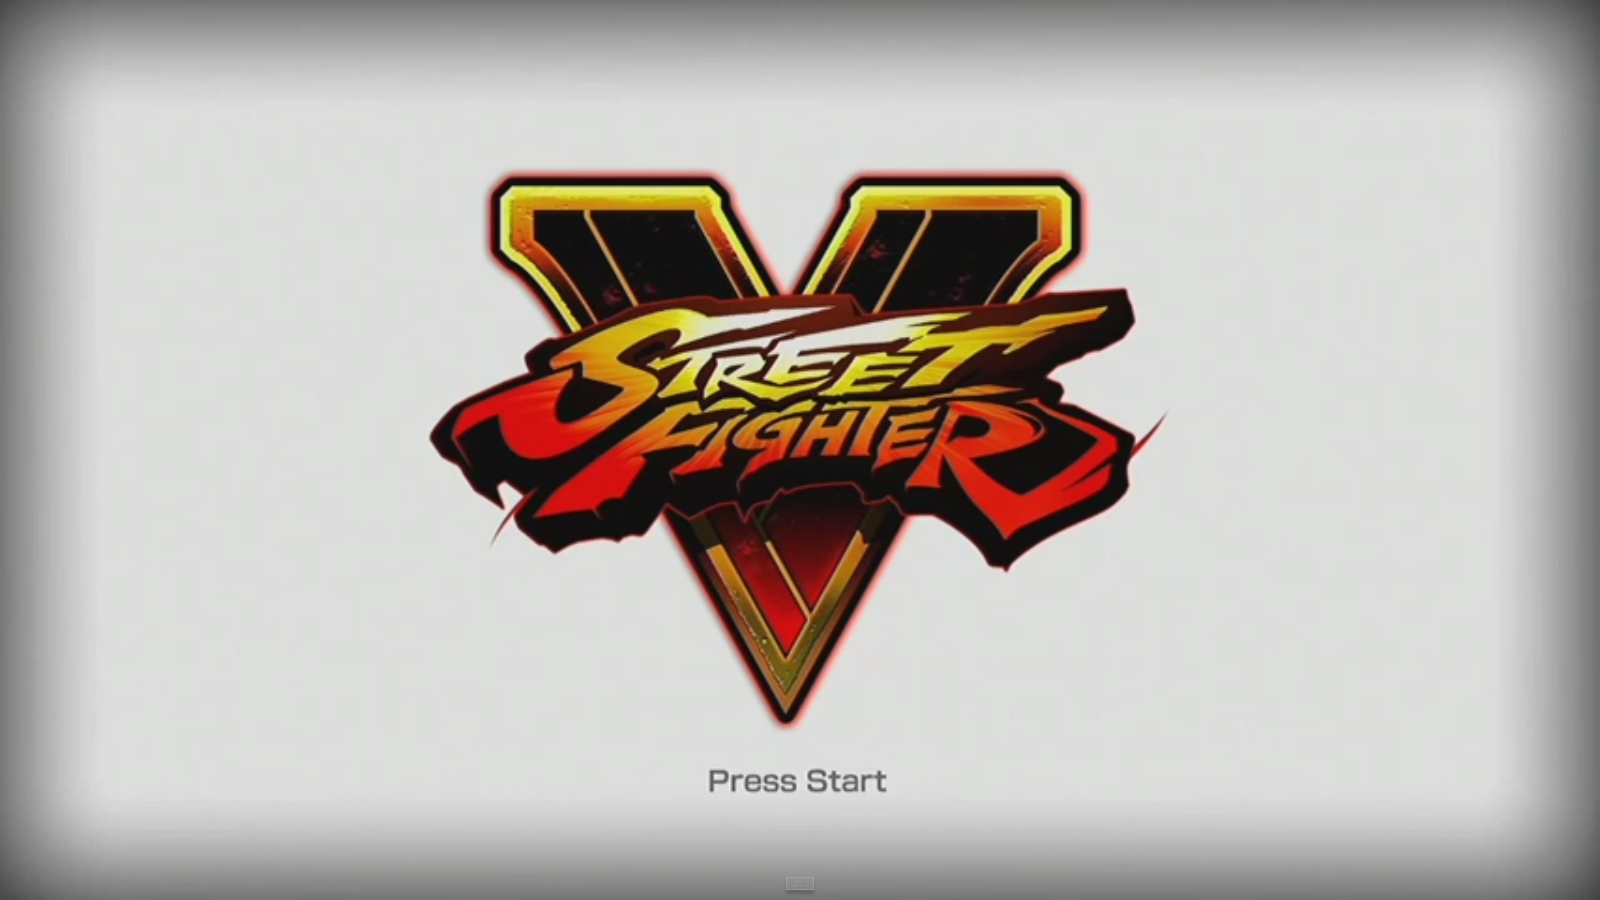 Nuovi video sul gameplay di Street Fighter V